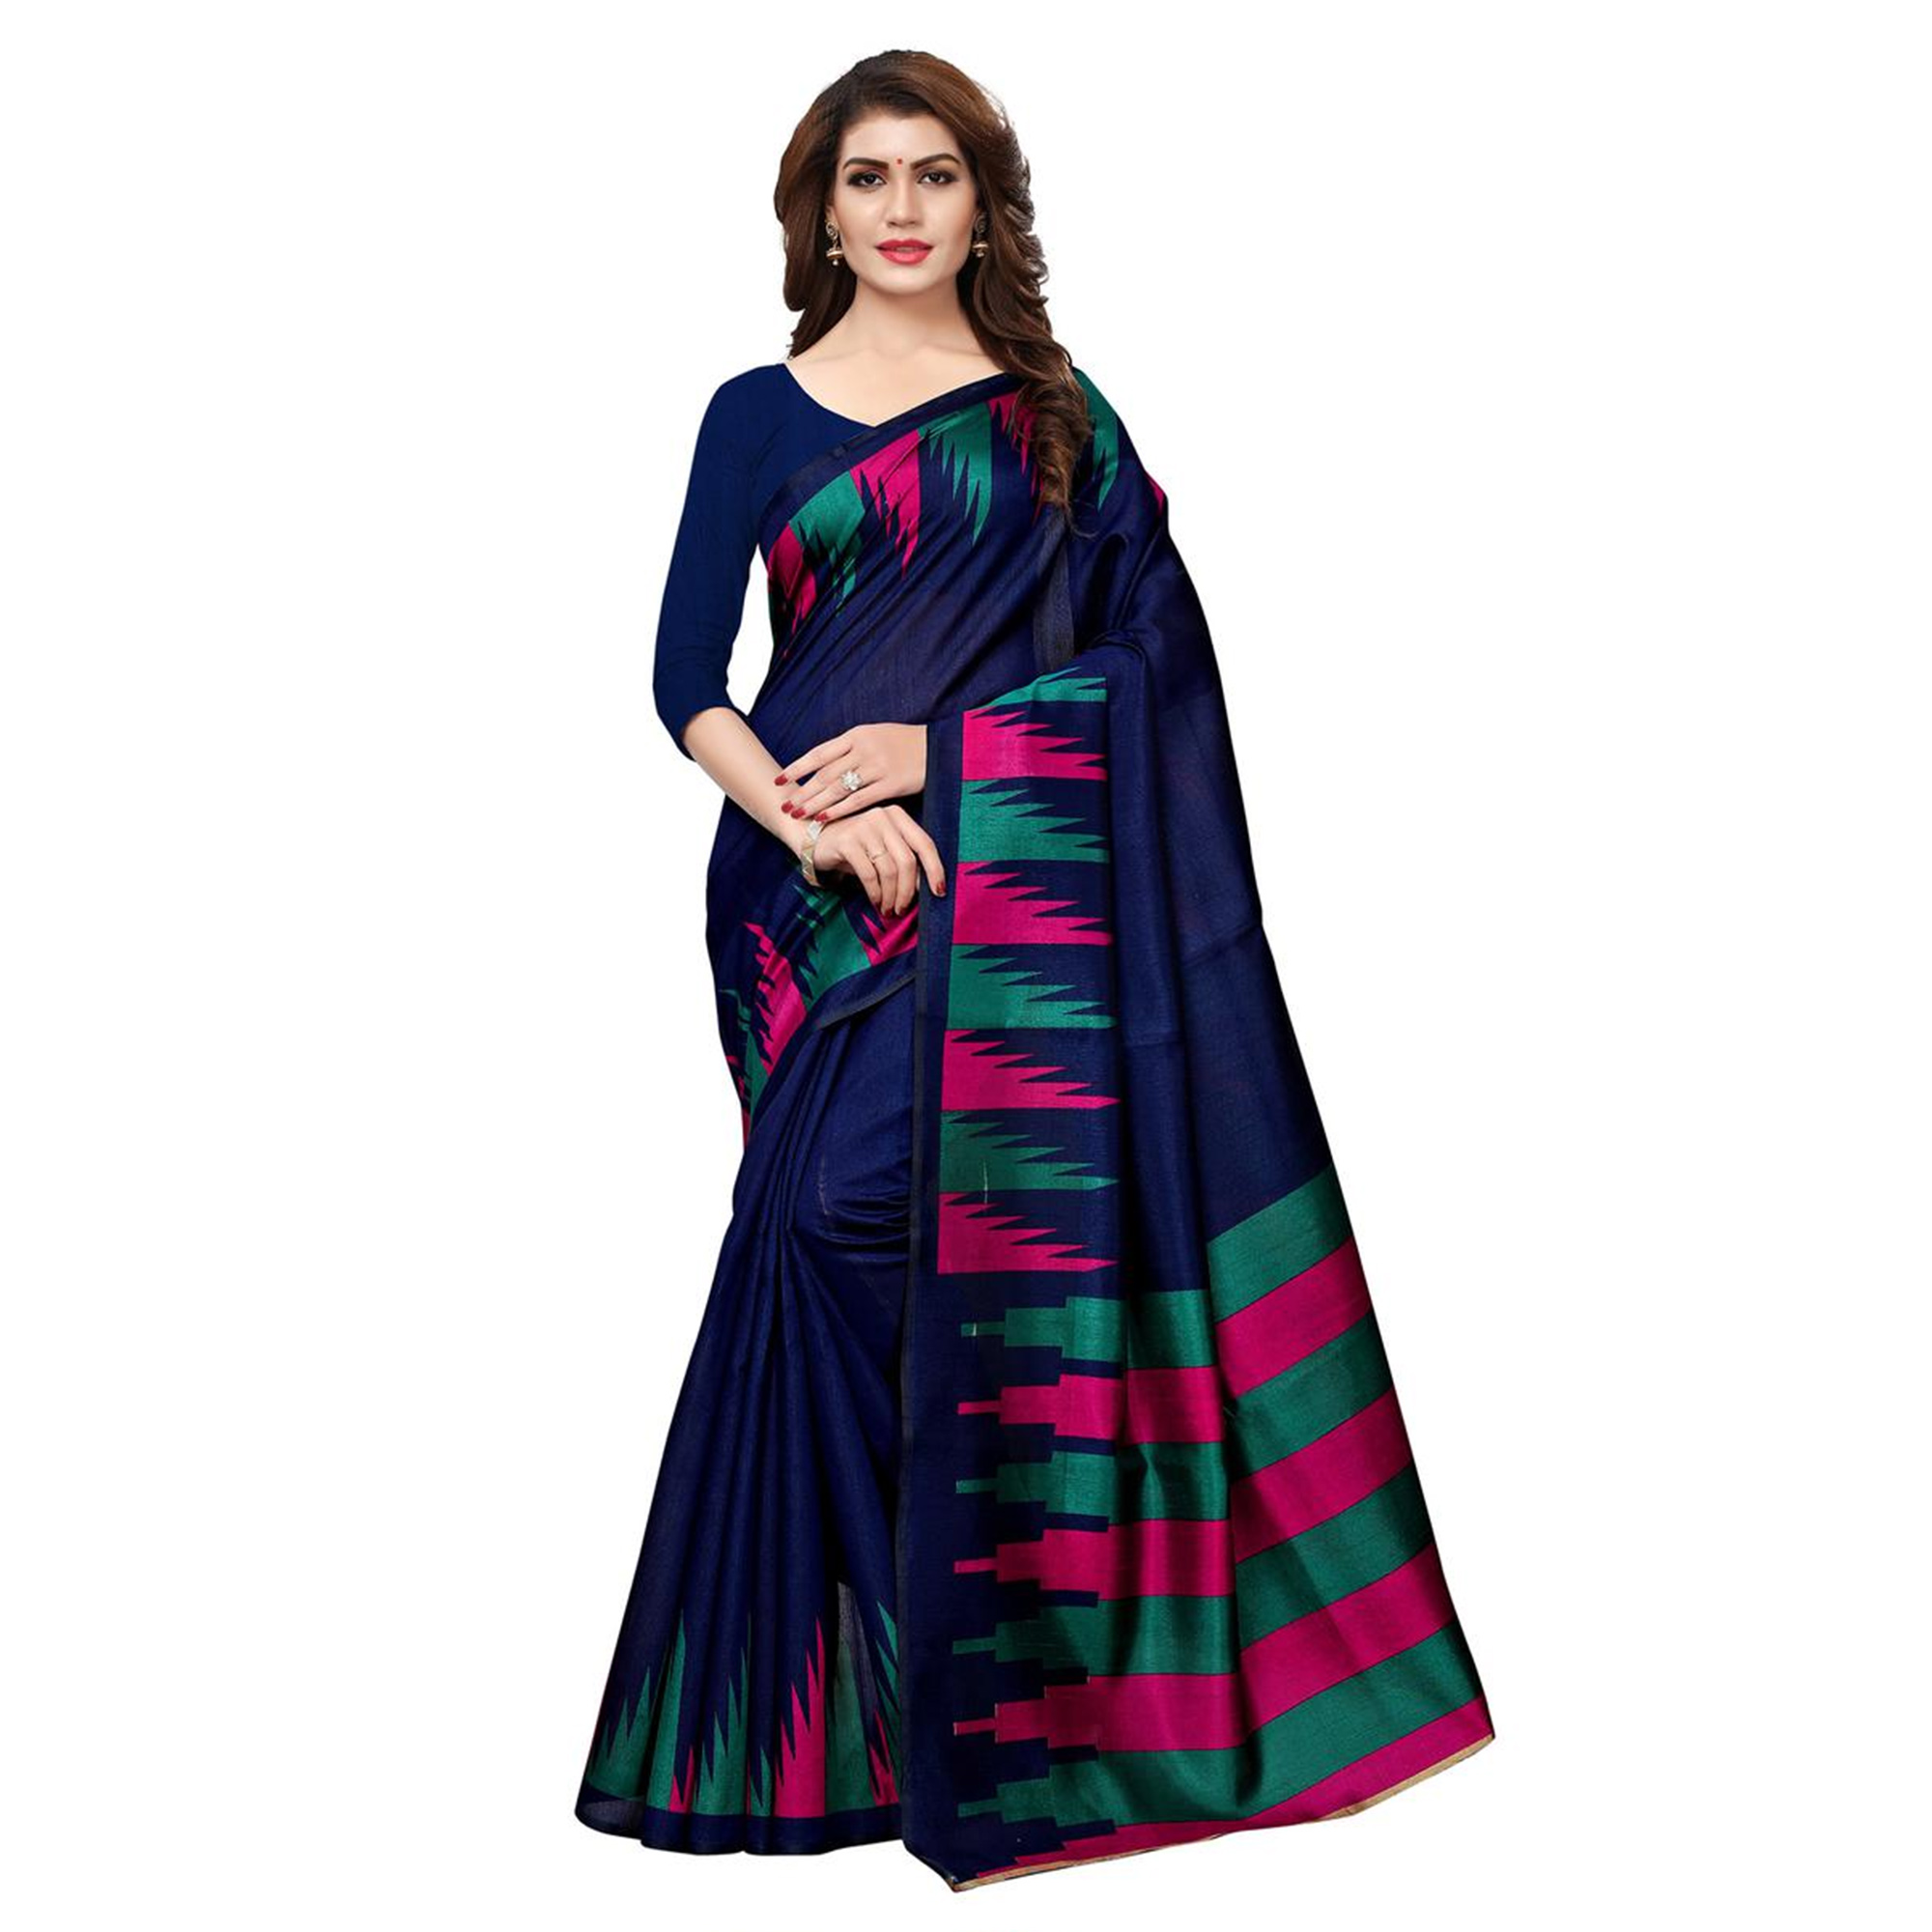 Appealing Casual Printed Art Silk Saree - Pack of 2